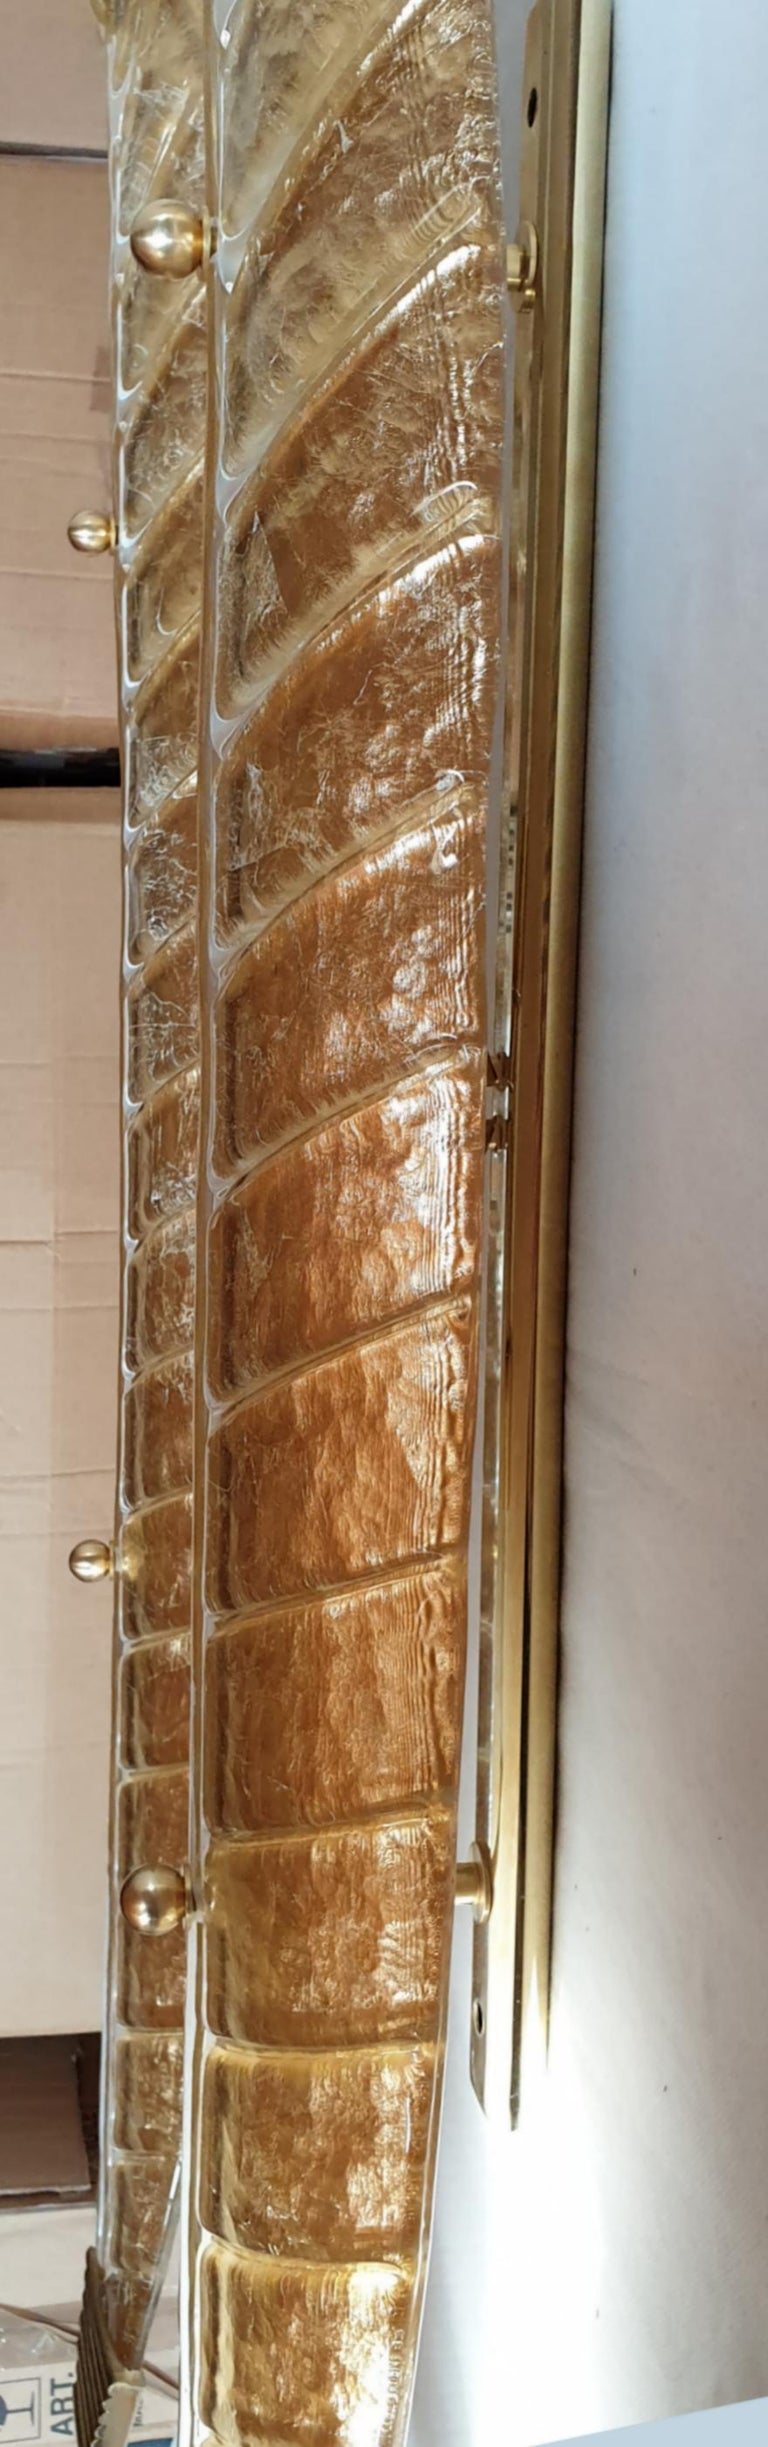 Two Large Mid-Century Modern Murano Glass Gold Leaf Sconces, Barovier Style 1970 For Sale 7